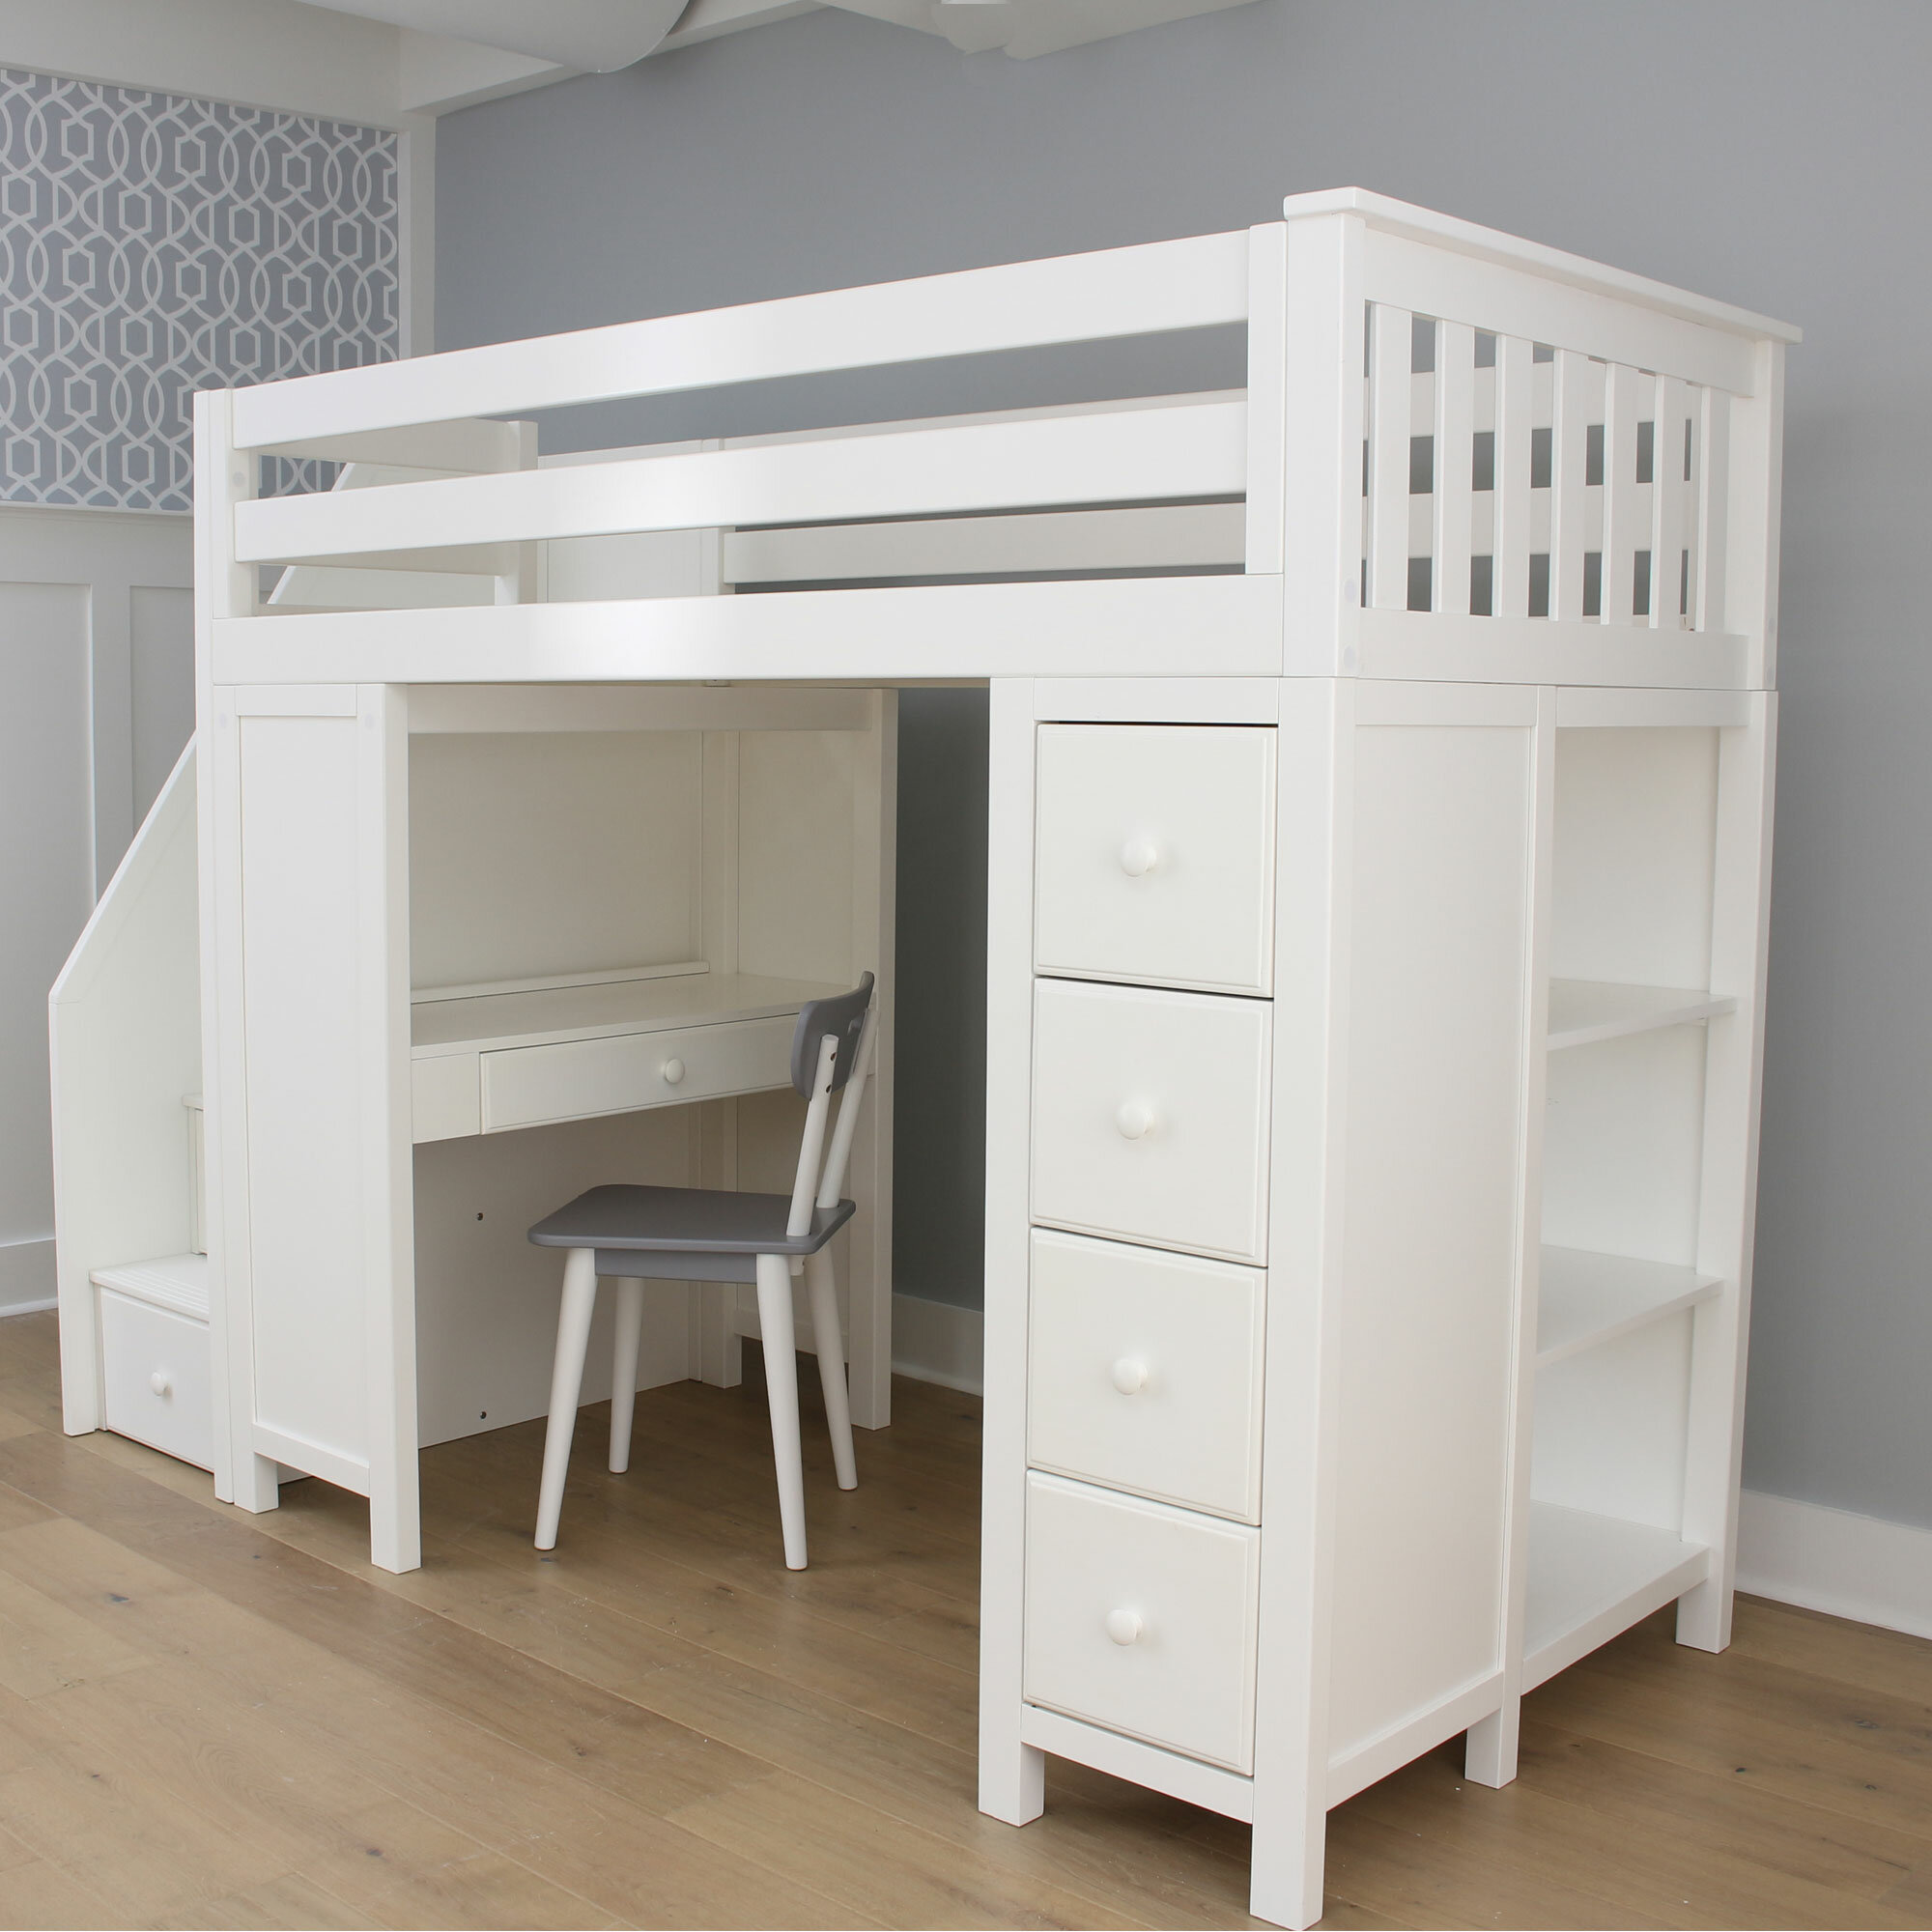 Twin Loft Bed.Deshotel Staircase Combo Twin Loft Bed